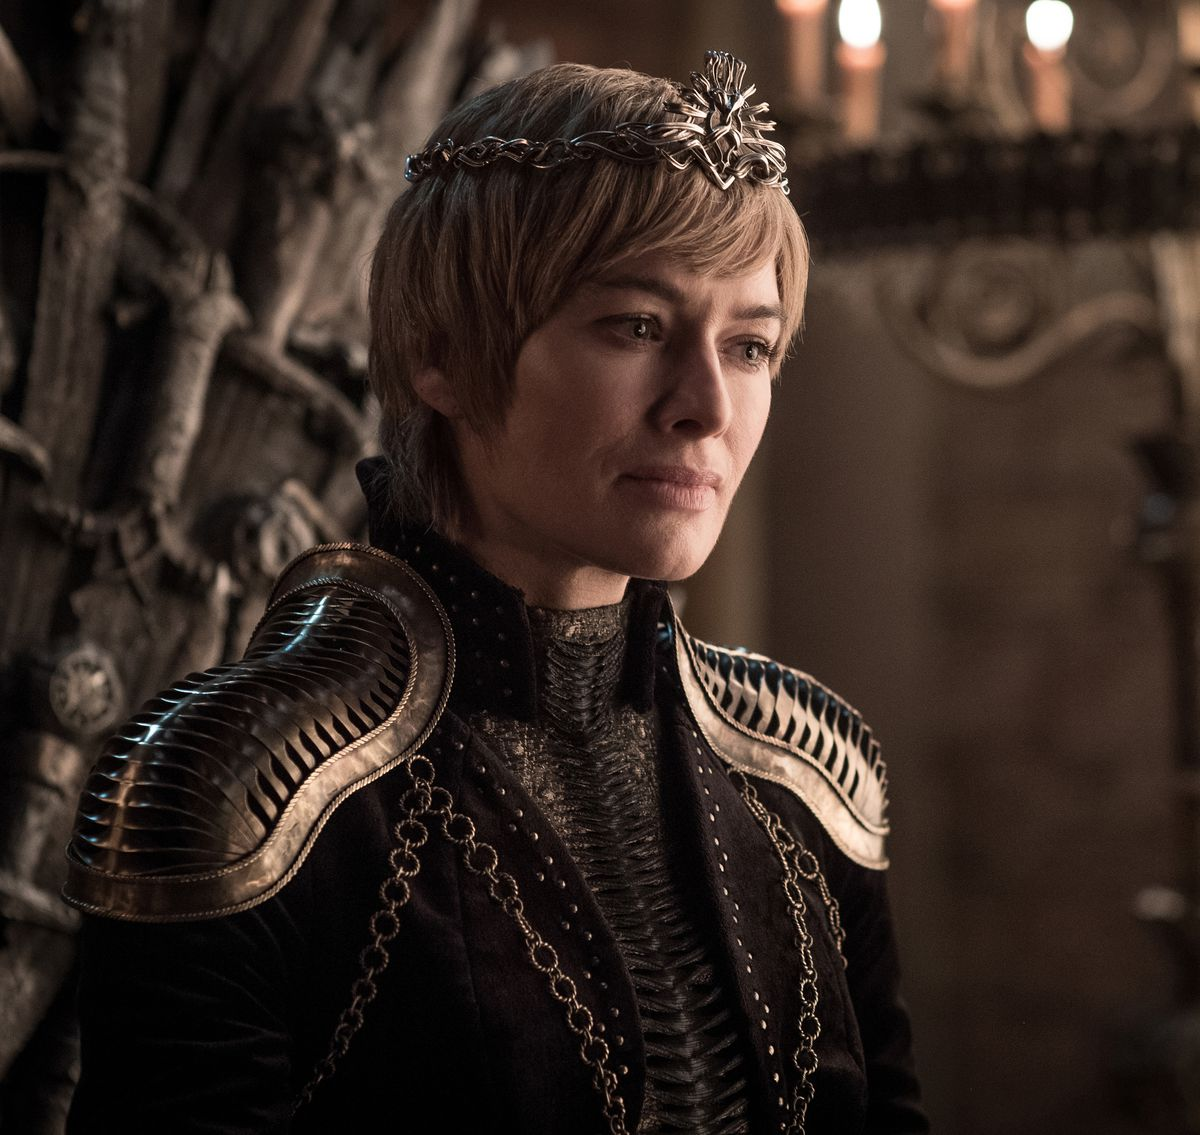 Game of Thrones season 8 - Cersei Lannister on the Iron Throne